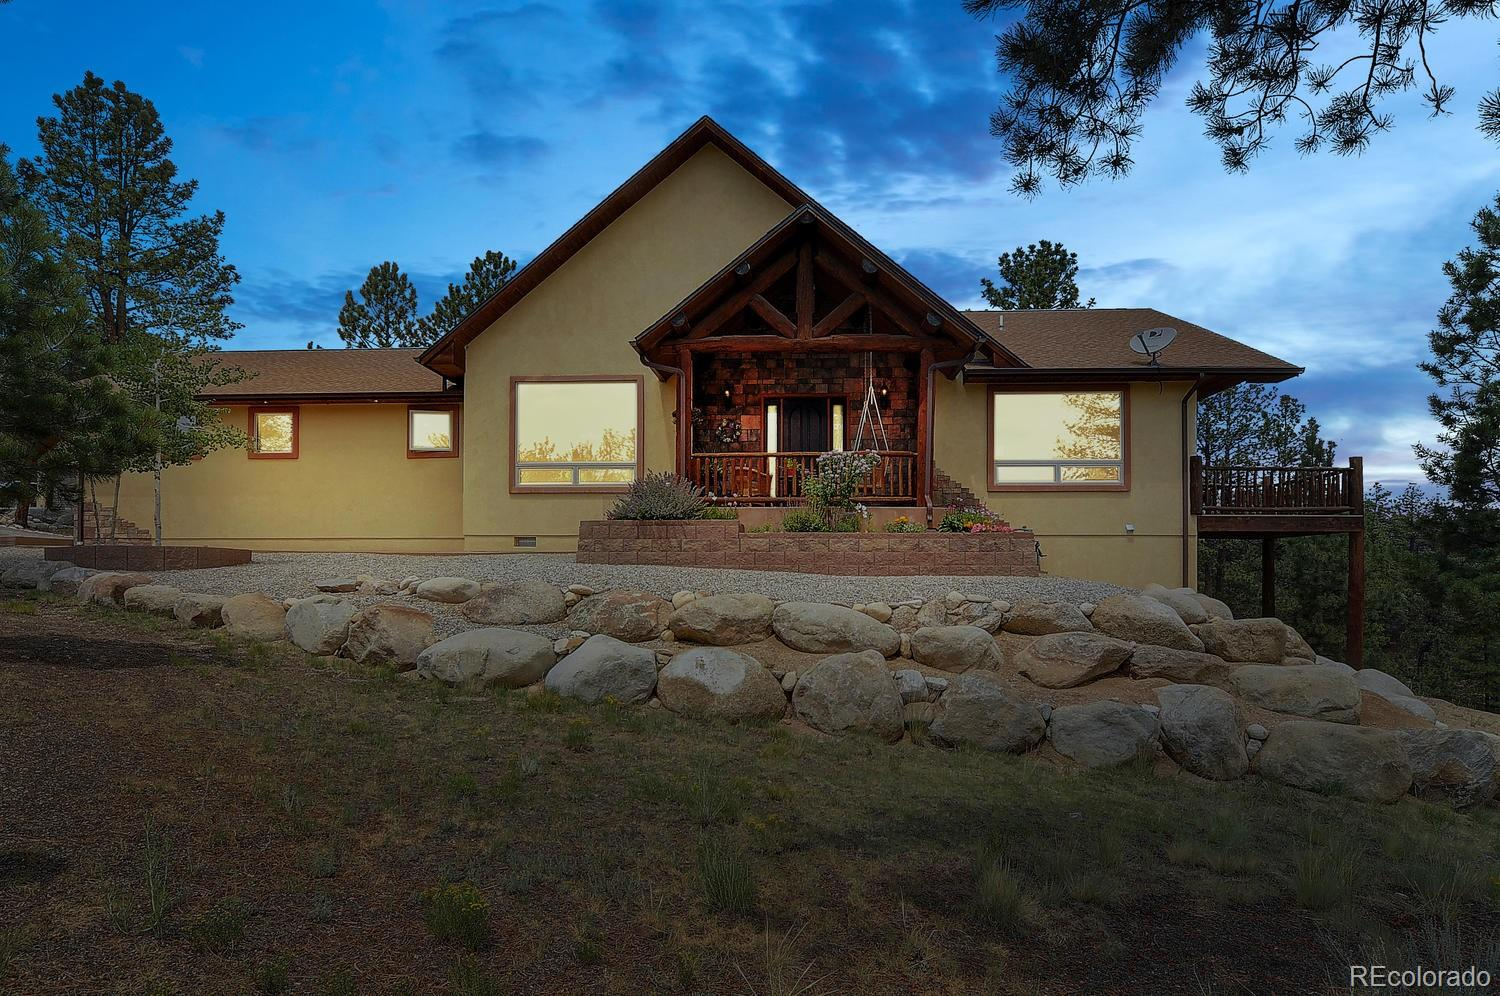 13103 County Road 261J, Nathrop, CO 81236 - Nathrop, CO real estate listing